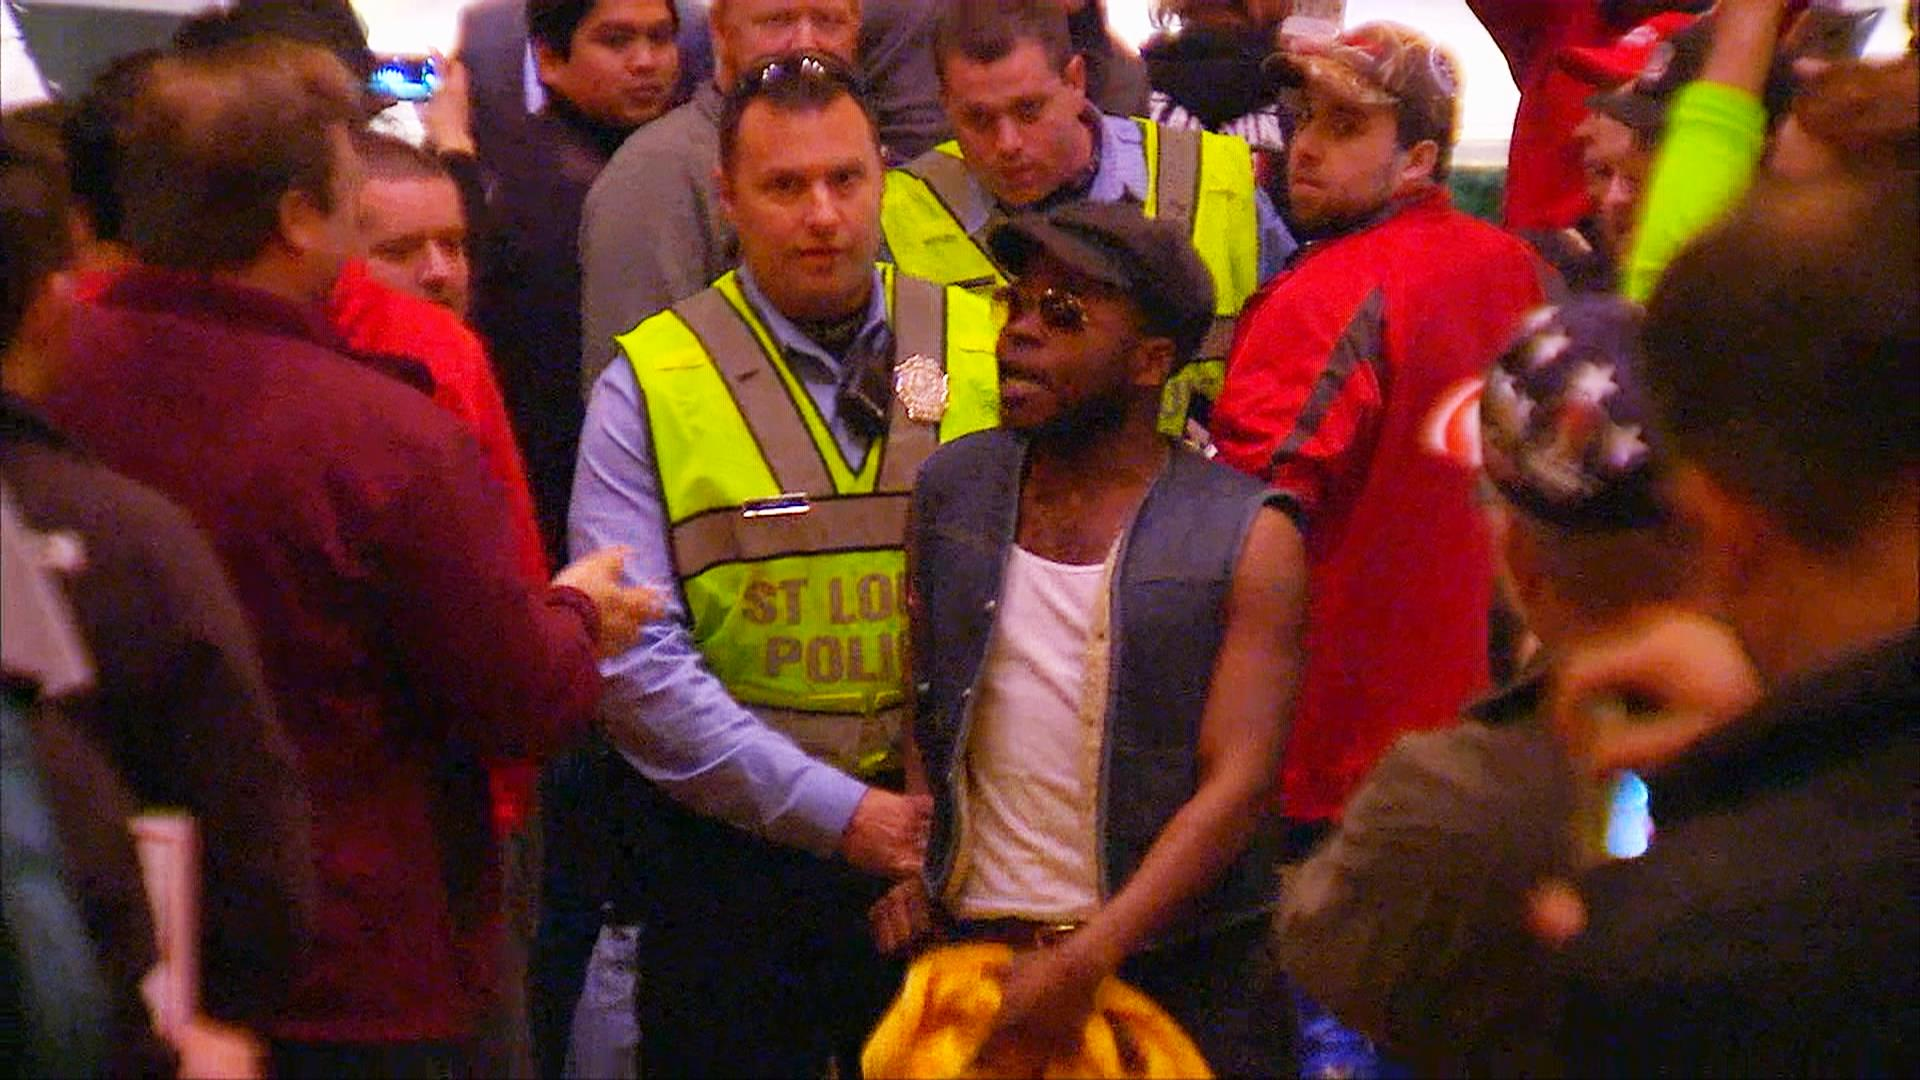 Protesters Disrupt Trump Rally in St. Louis